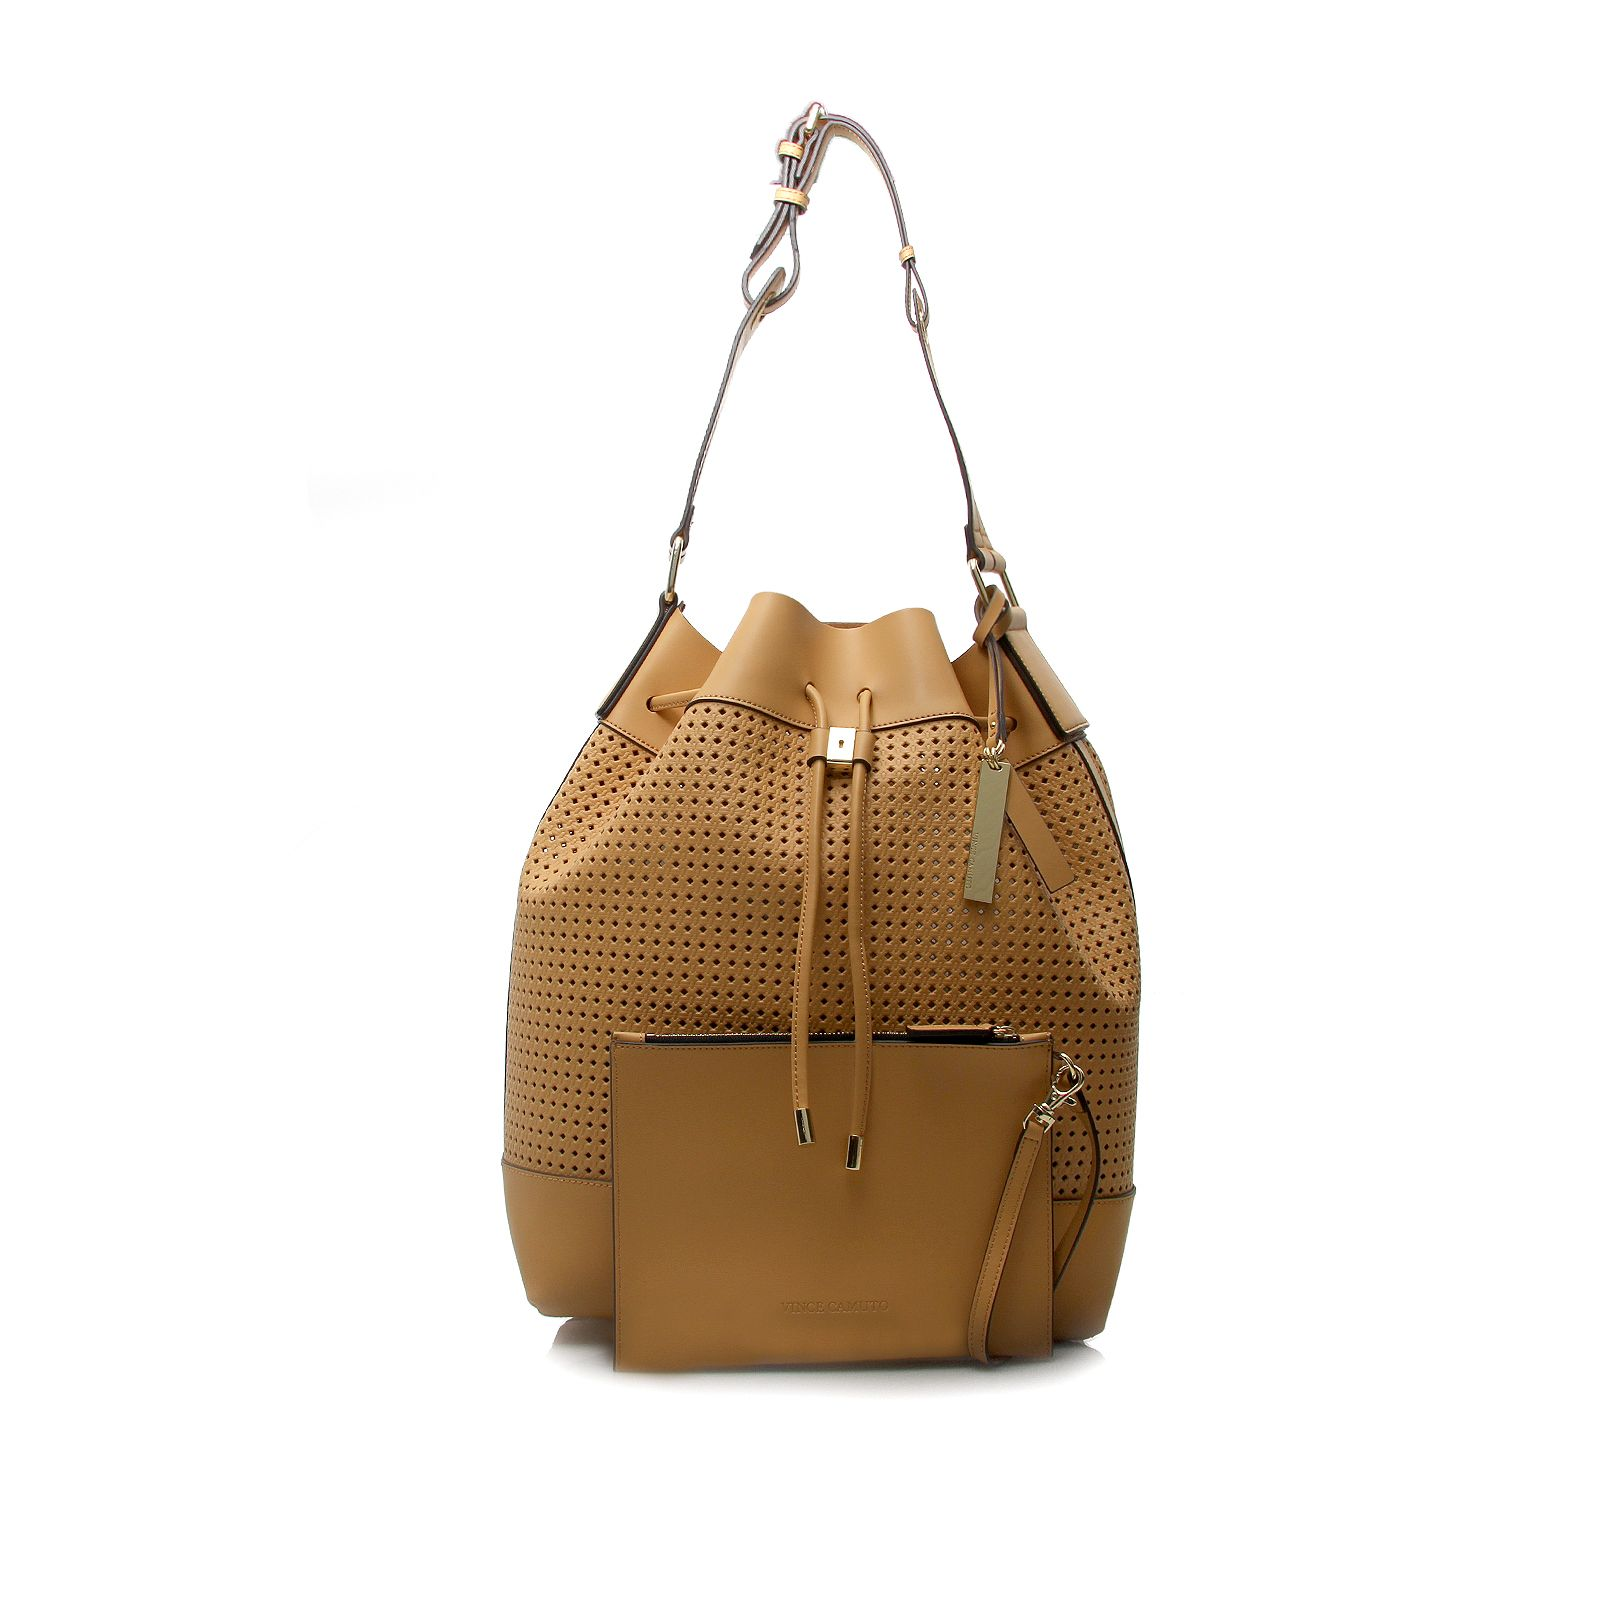 Colby shoulder bag